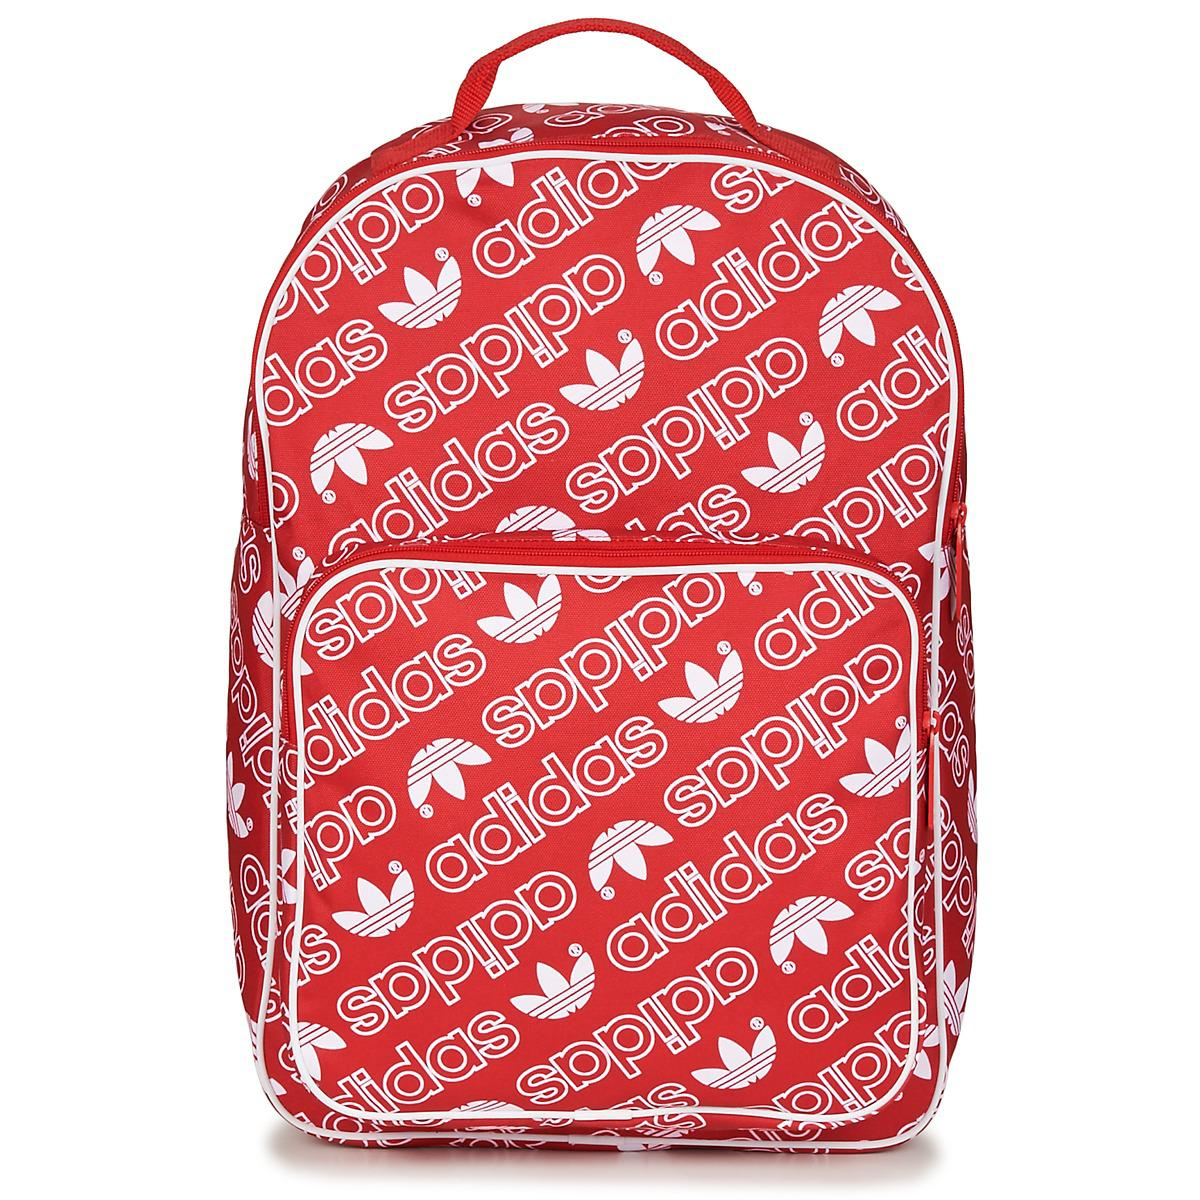 adidas Bp Class Ac Gr Backpack in Red for Men - Lyst 1446c6d546f8e